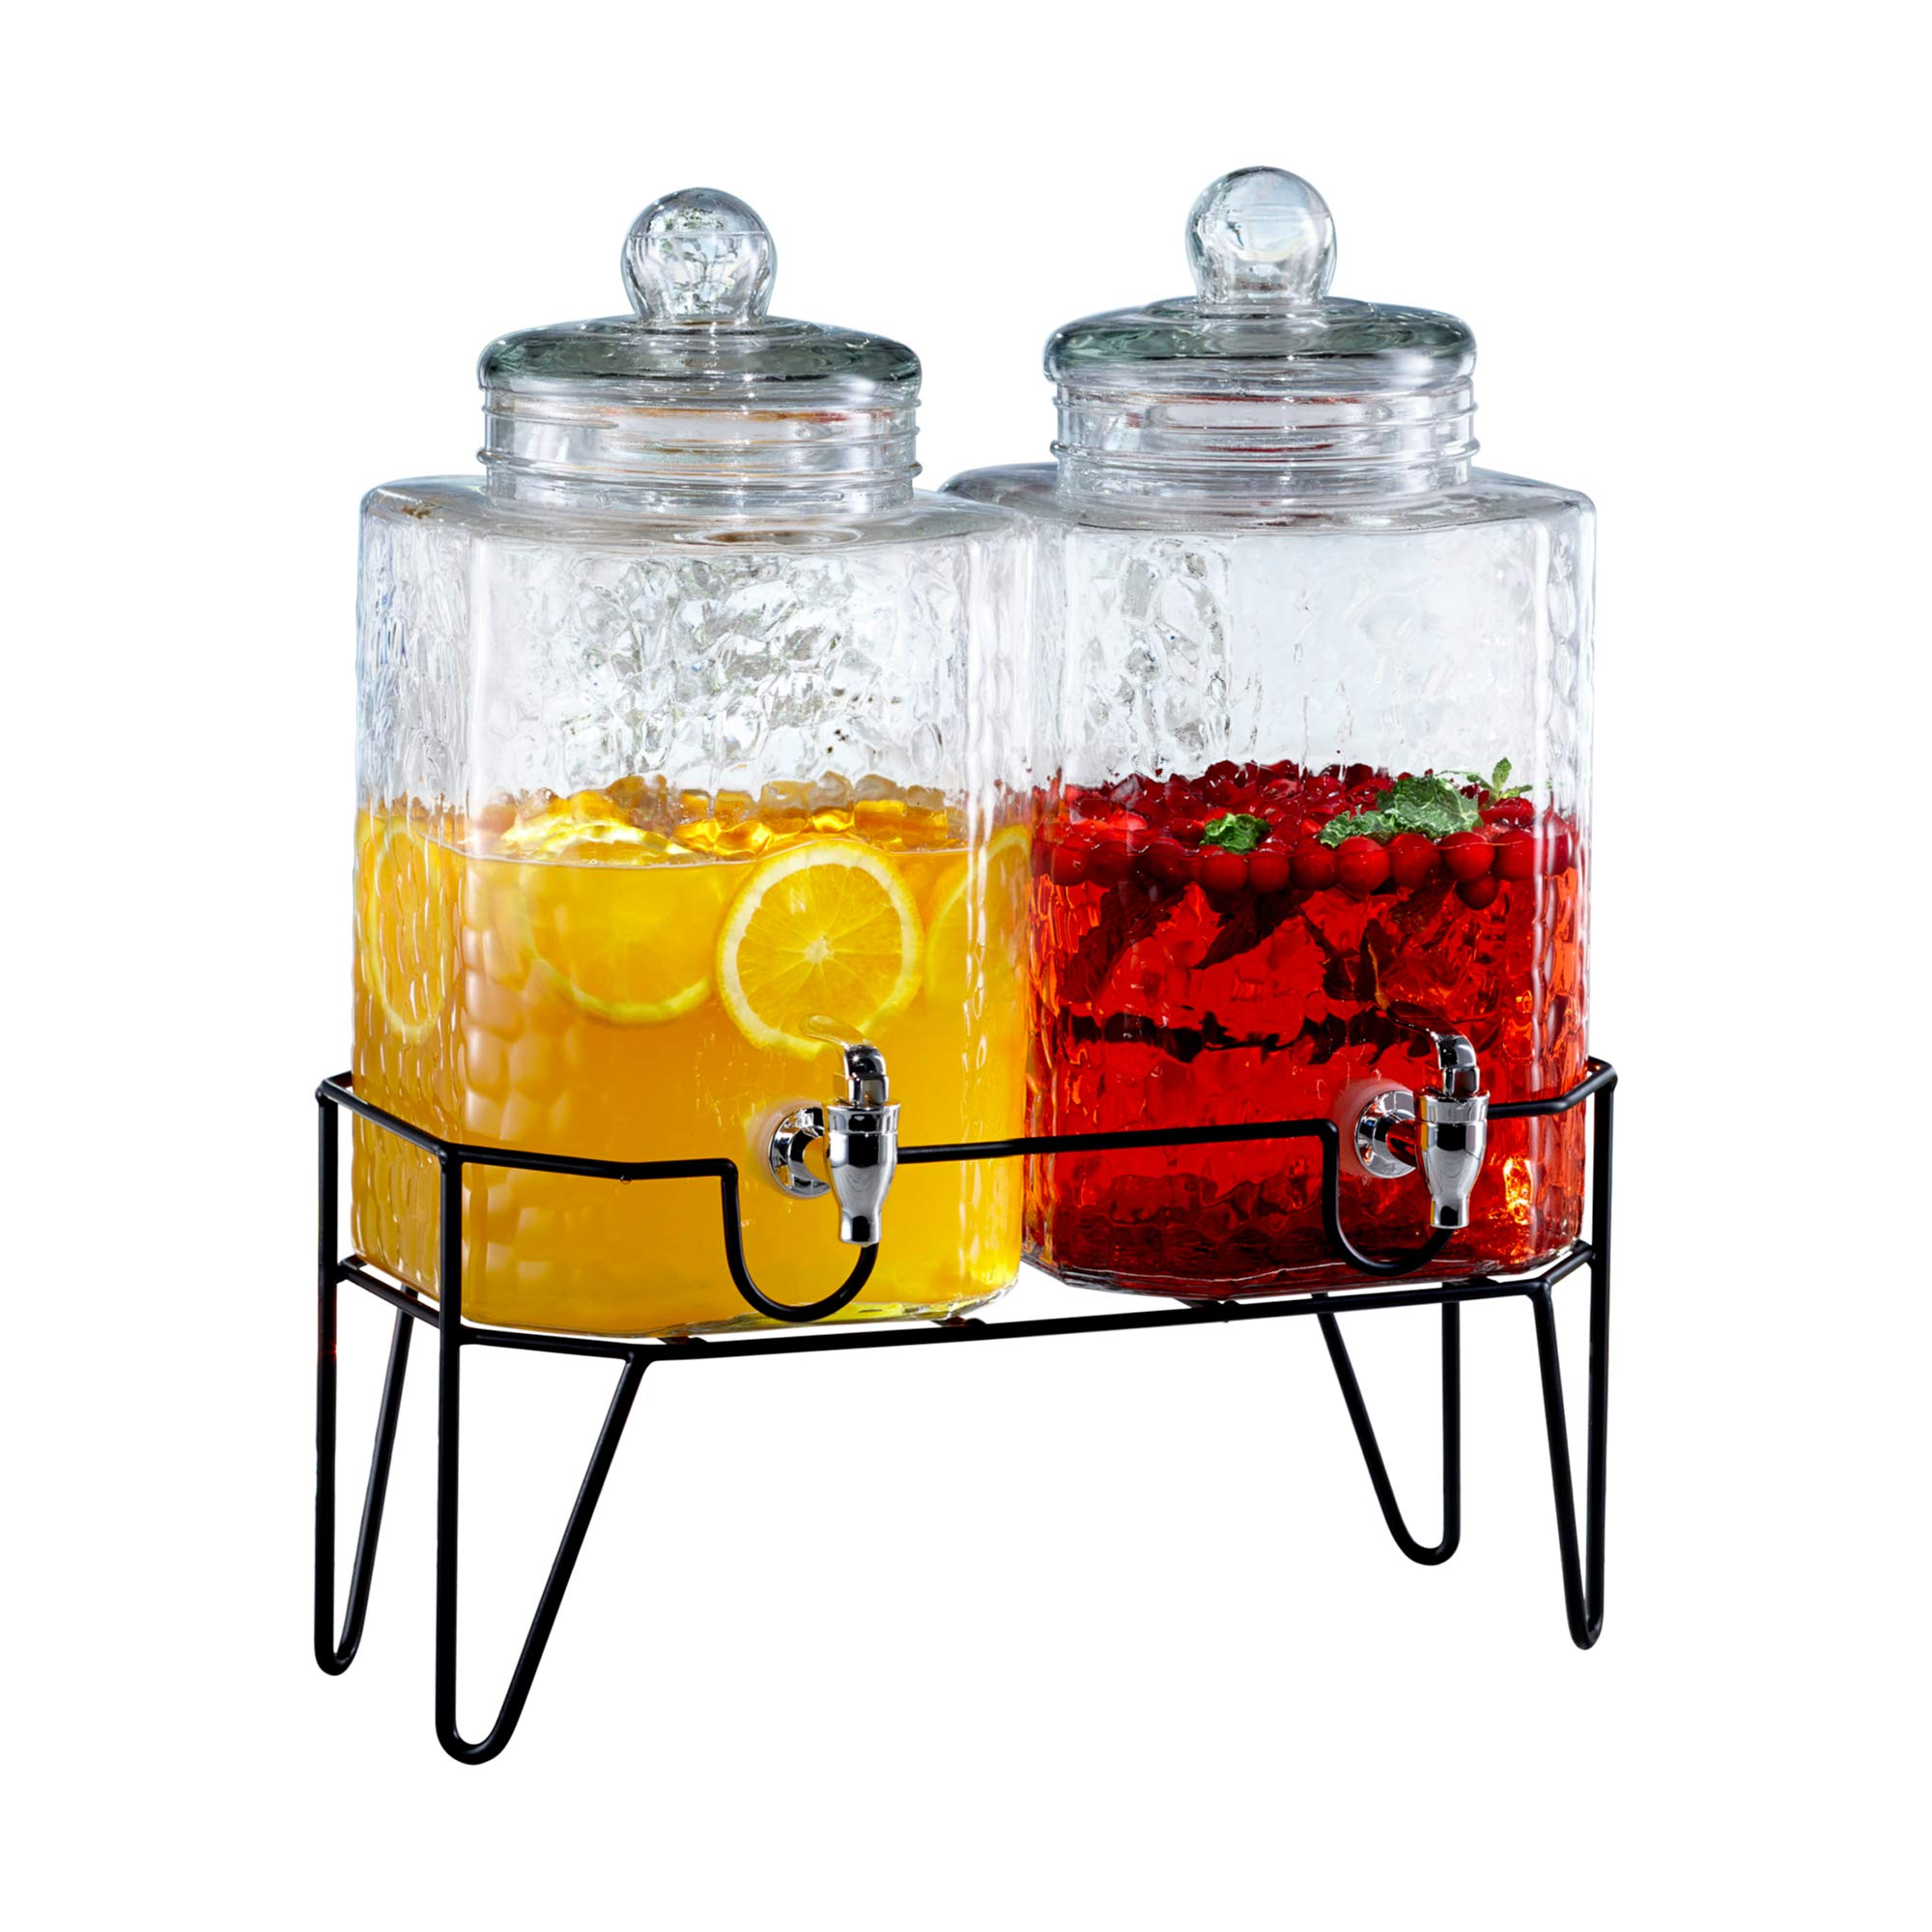 Style Setter Hamburg 210266-GB 1.5 Gallon Each Glass Beverage Drink Dispensers with Metal Stand (Set of 2), 8.2 x 16.8'', Clear